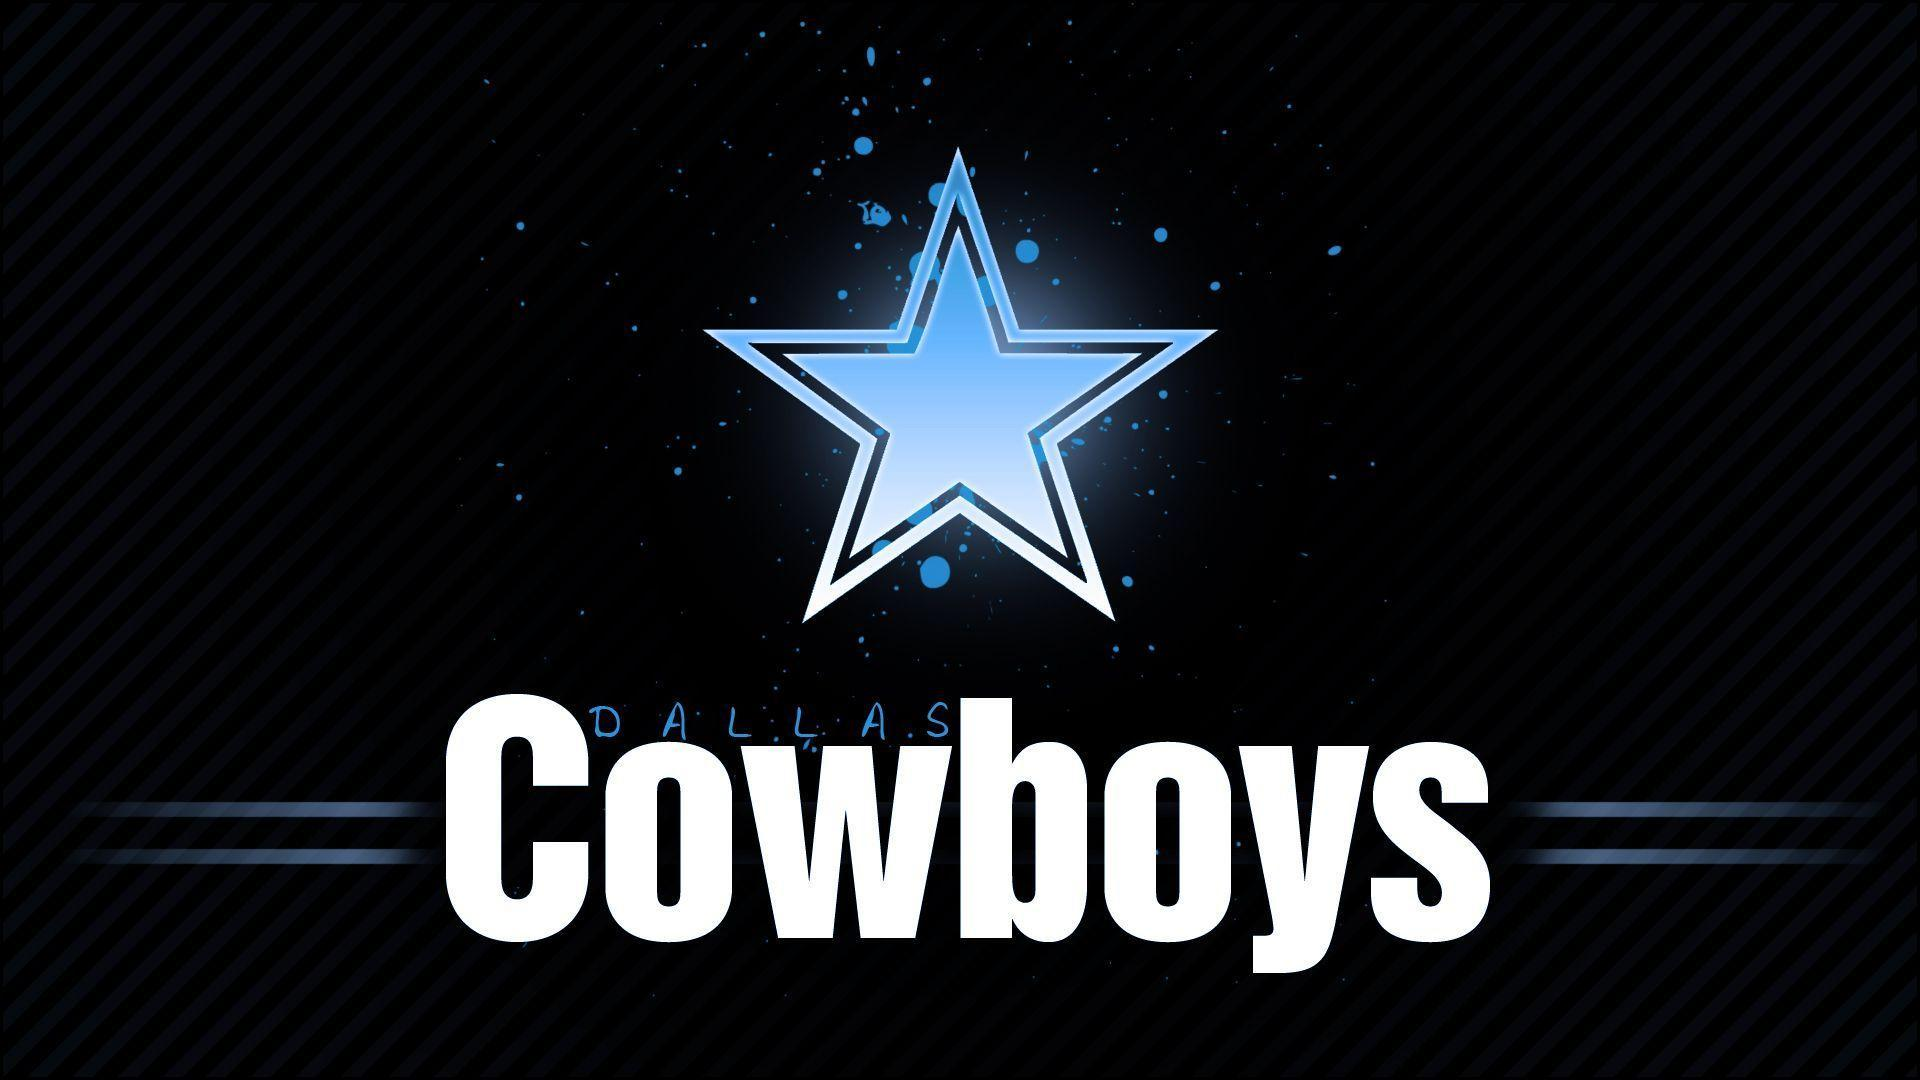 Sports Dallas Cowboys Wallpapers 1680x1050 px Free Download